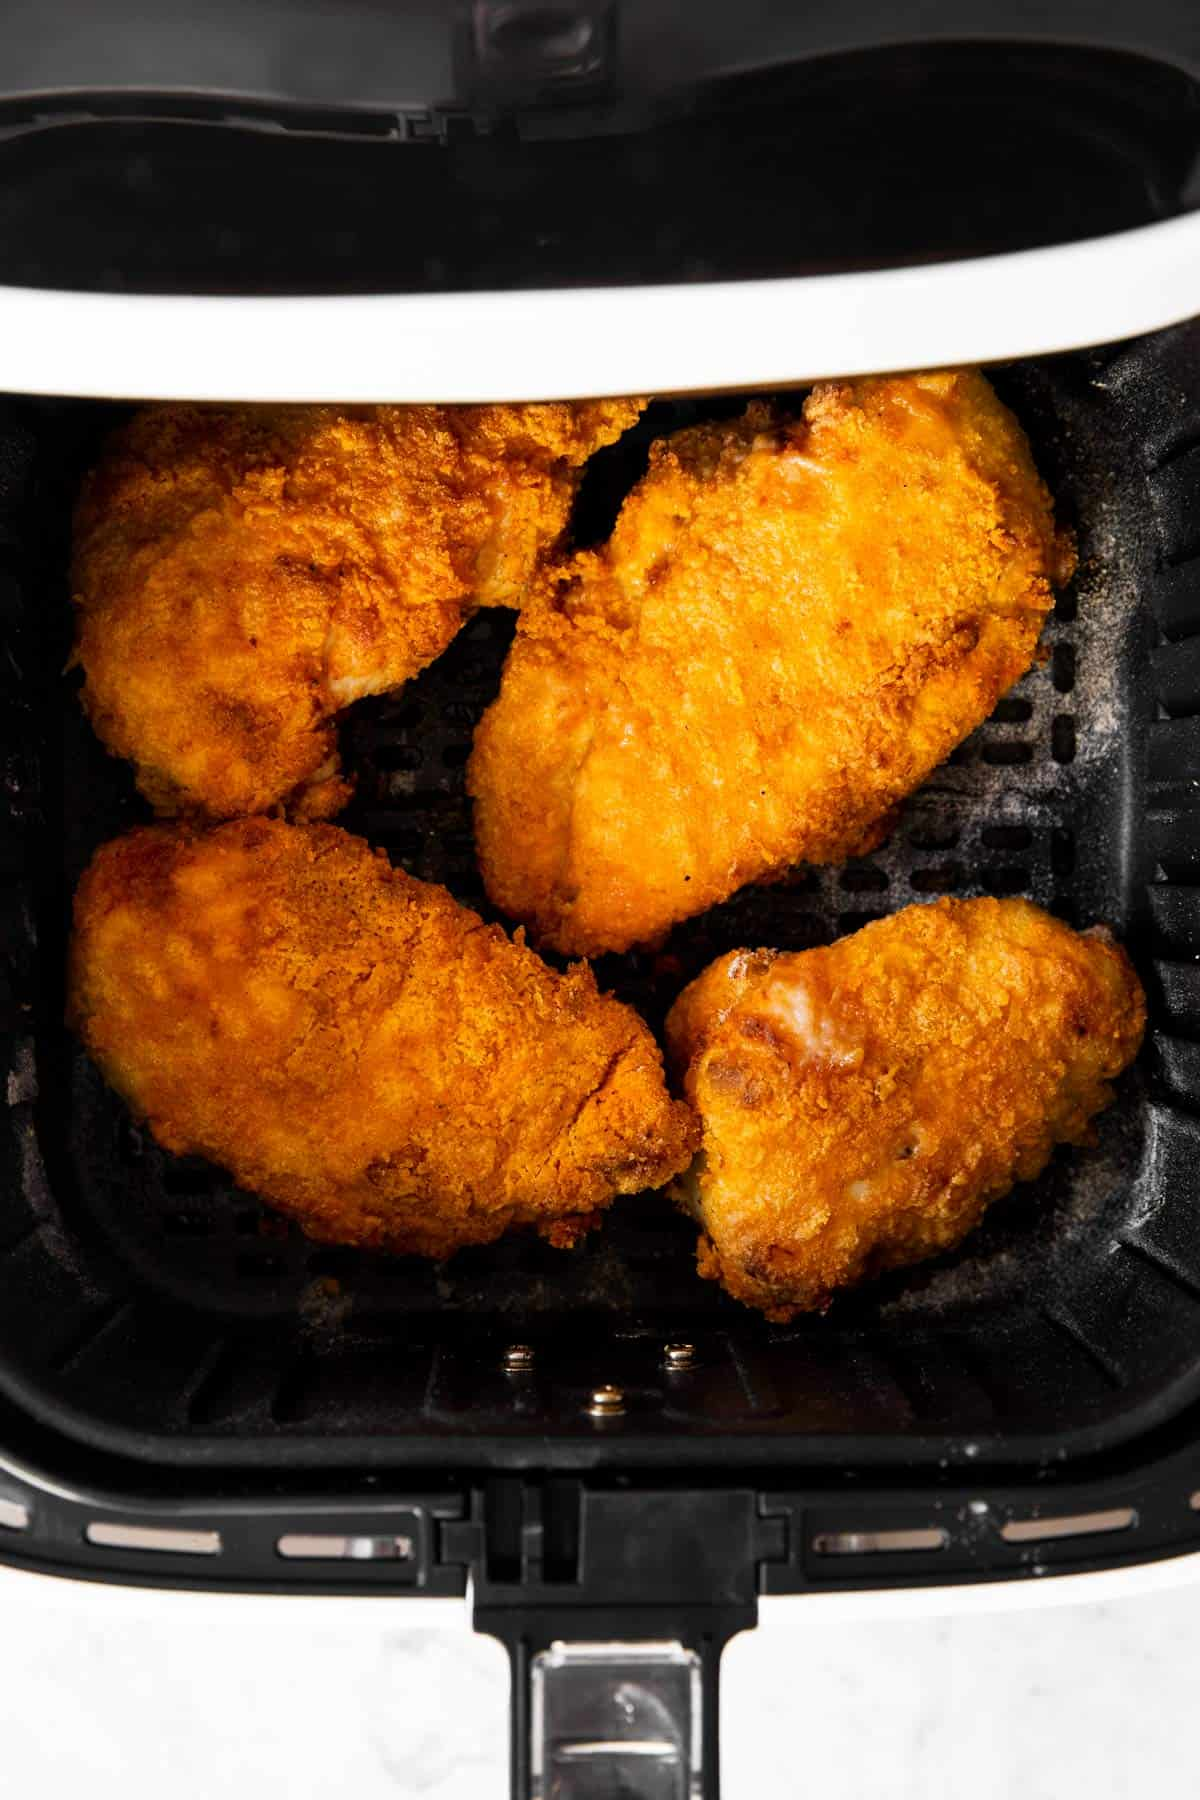 overhead view of four pieces of fried chicken in air fryer basket